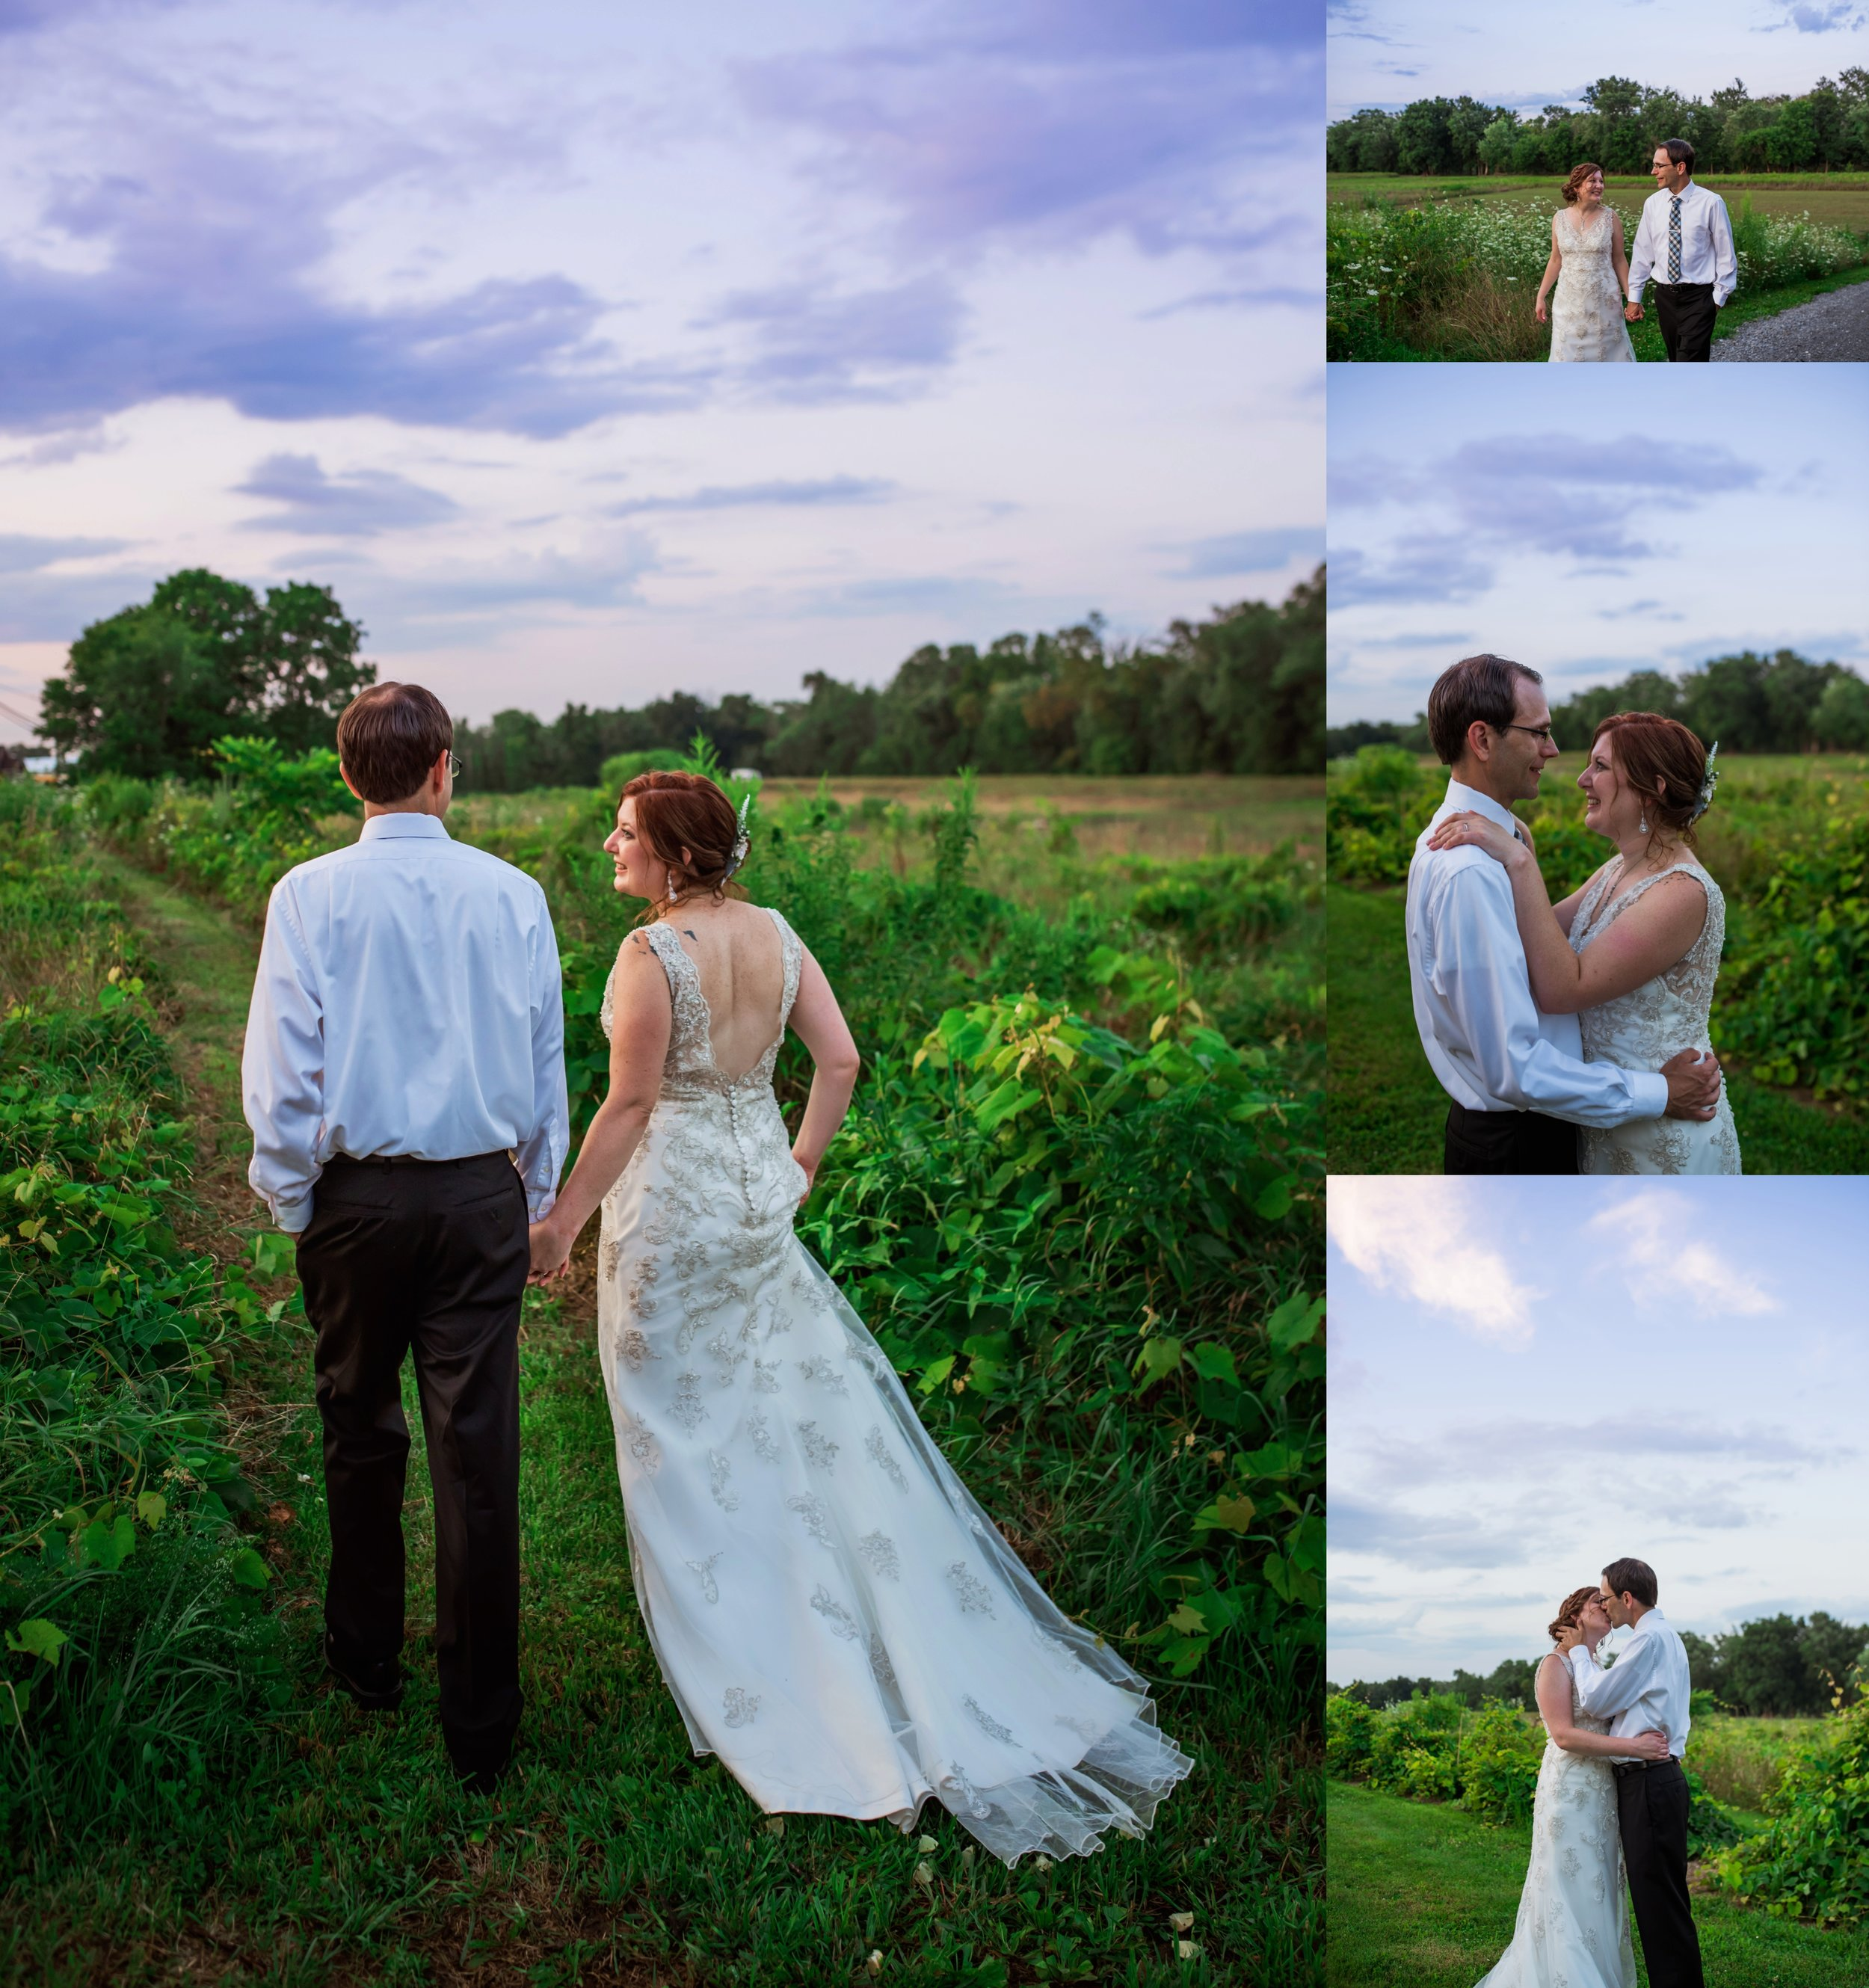 I always encourage my couples to take a few moments right before sunset for some intimate portraits.